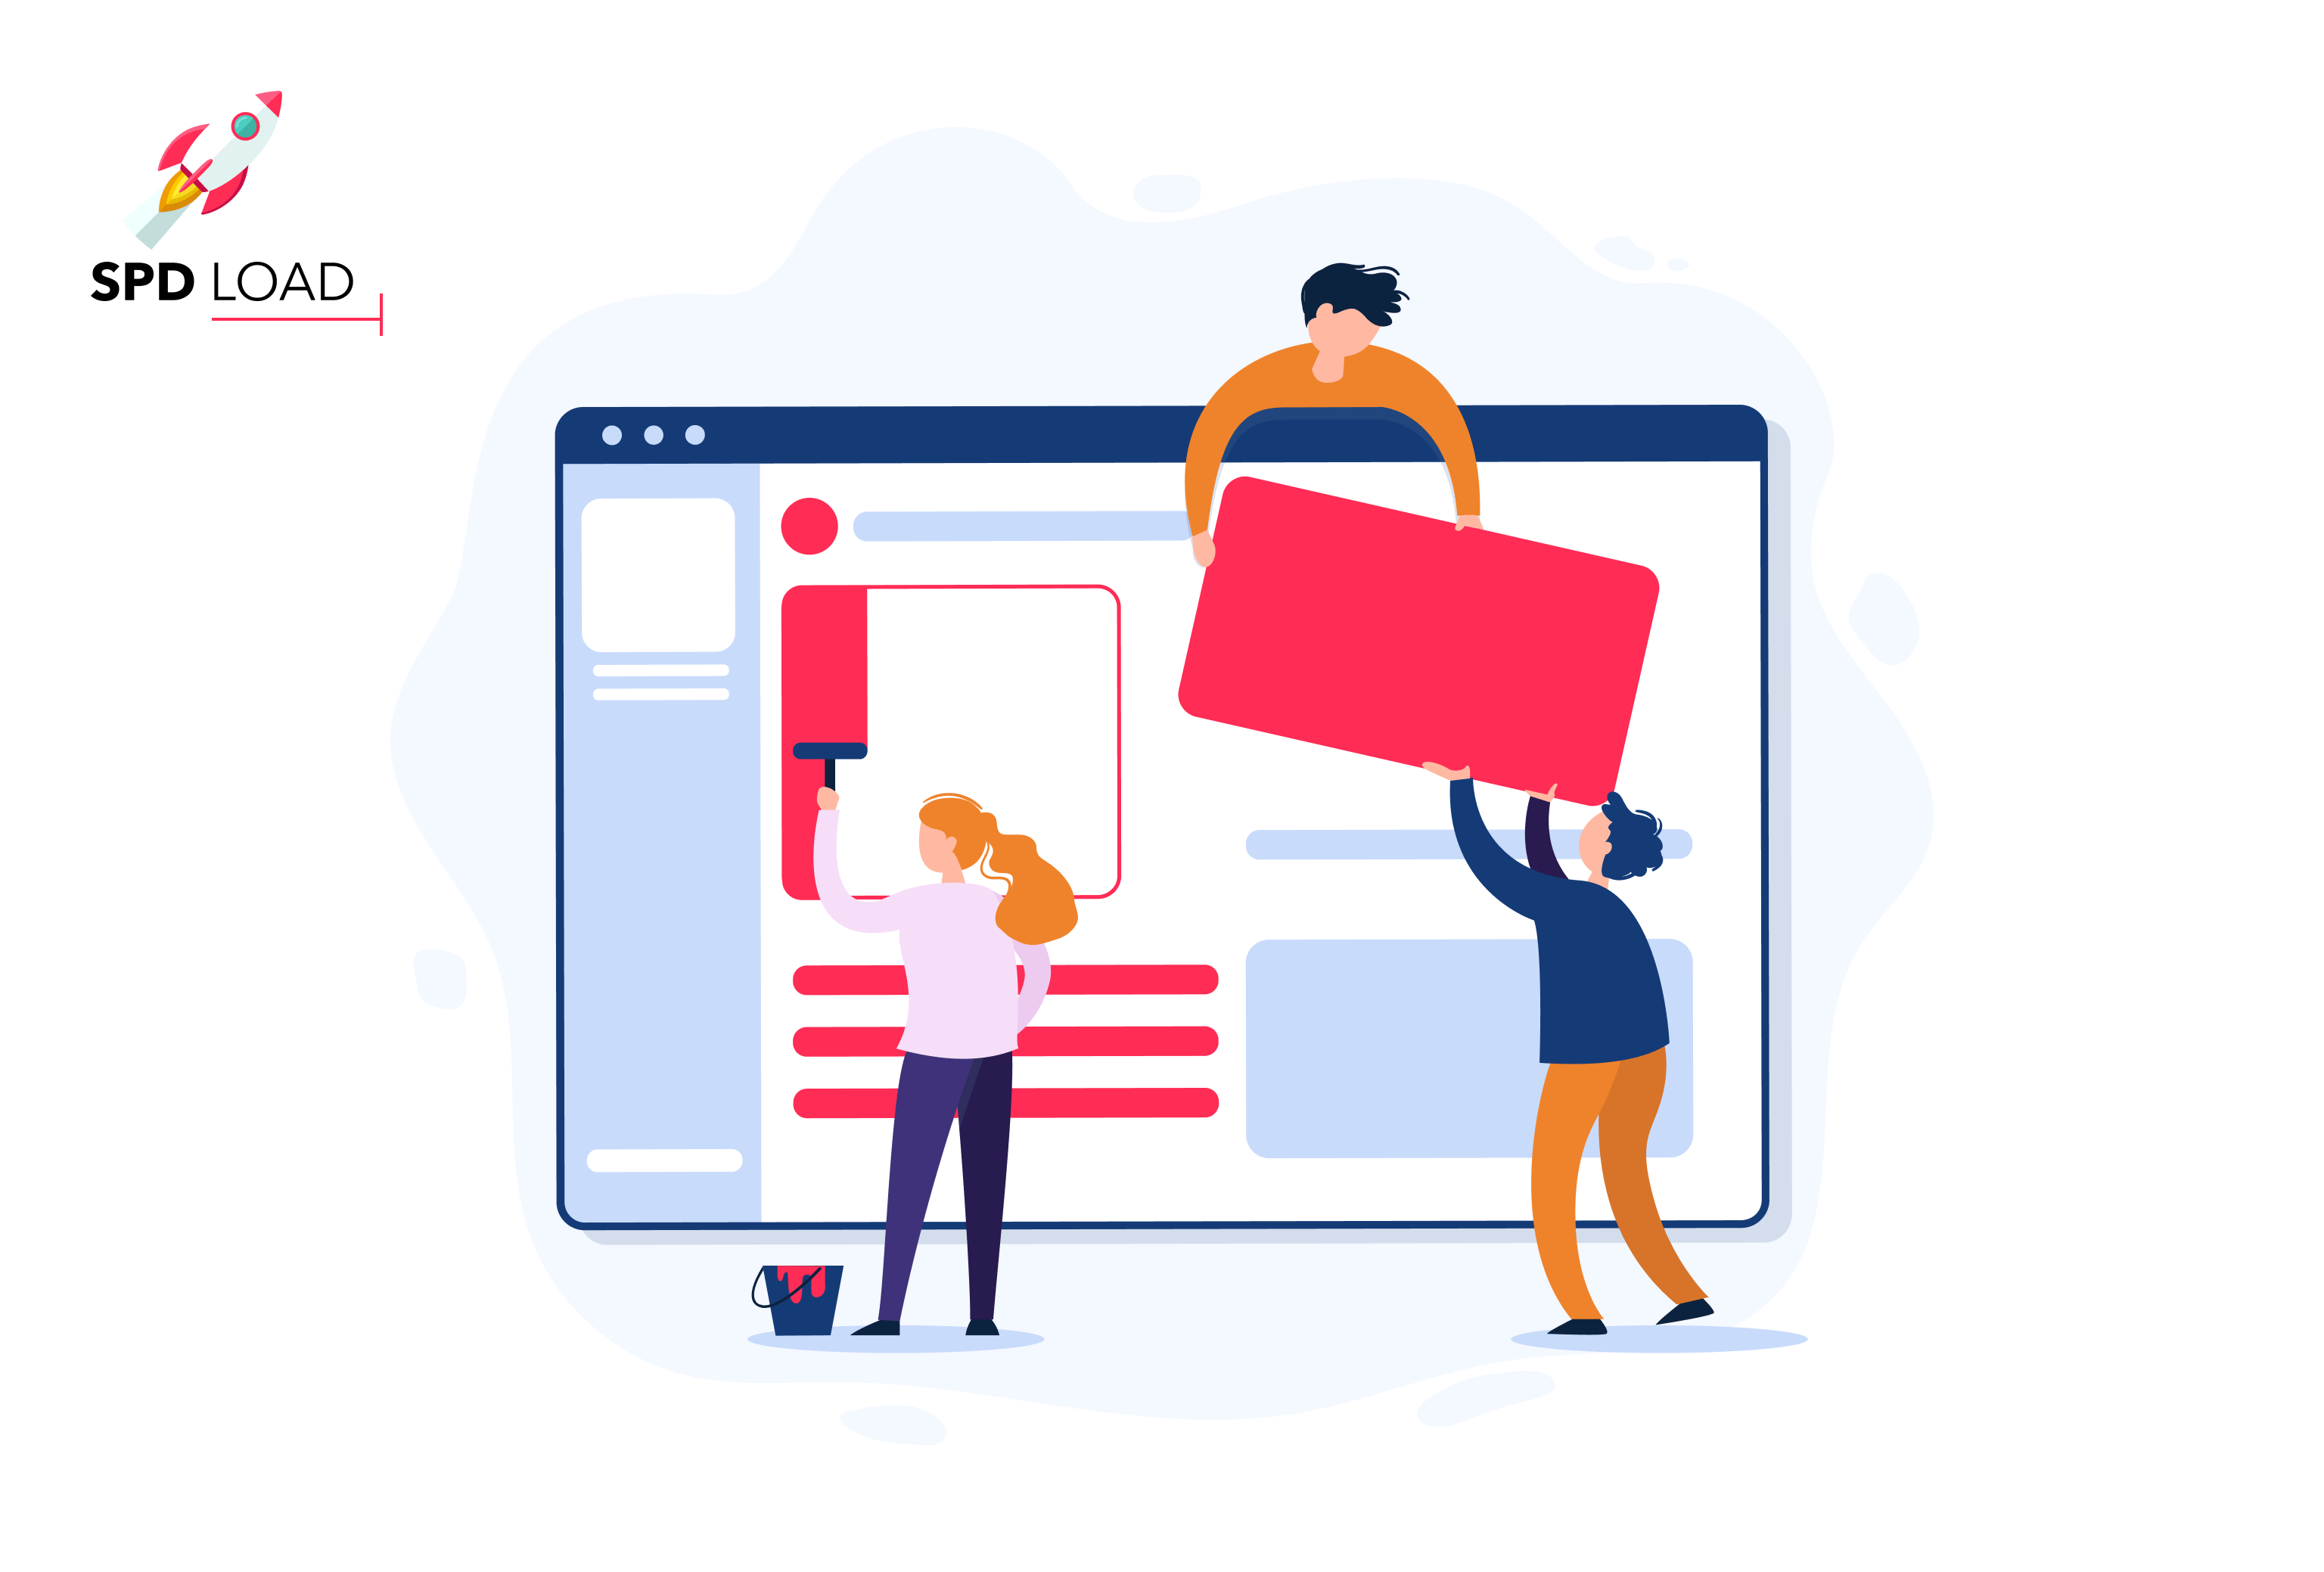 SpdLoad prepared an in-depth guide about how to design a saas product